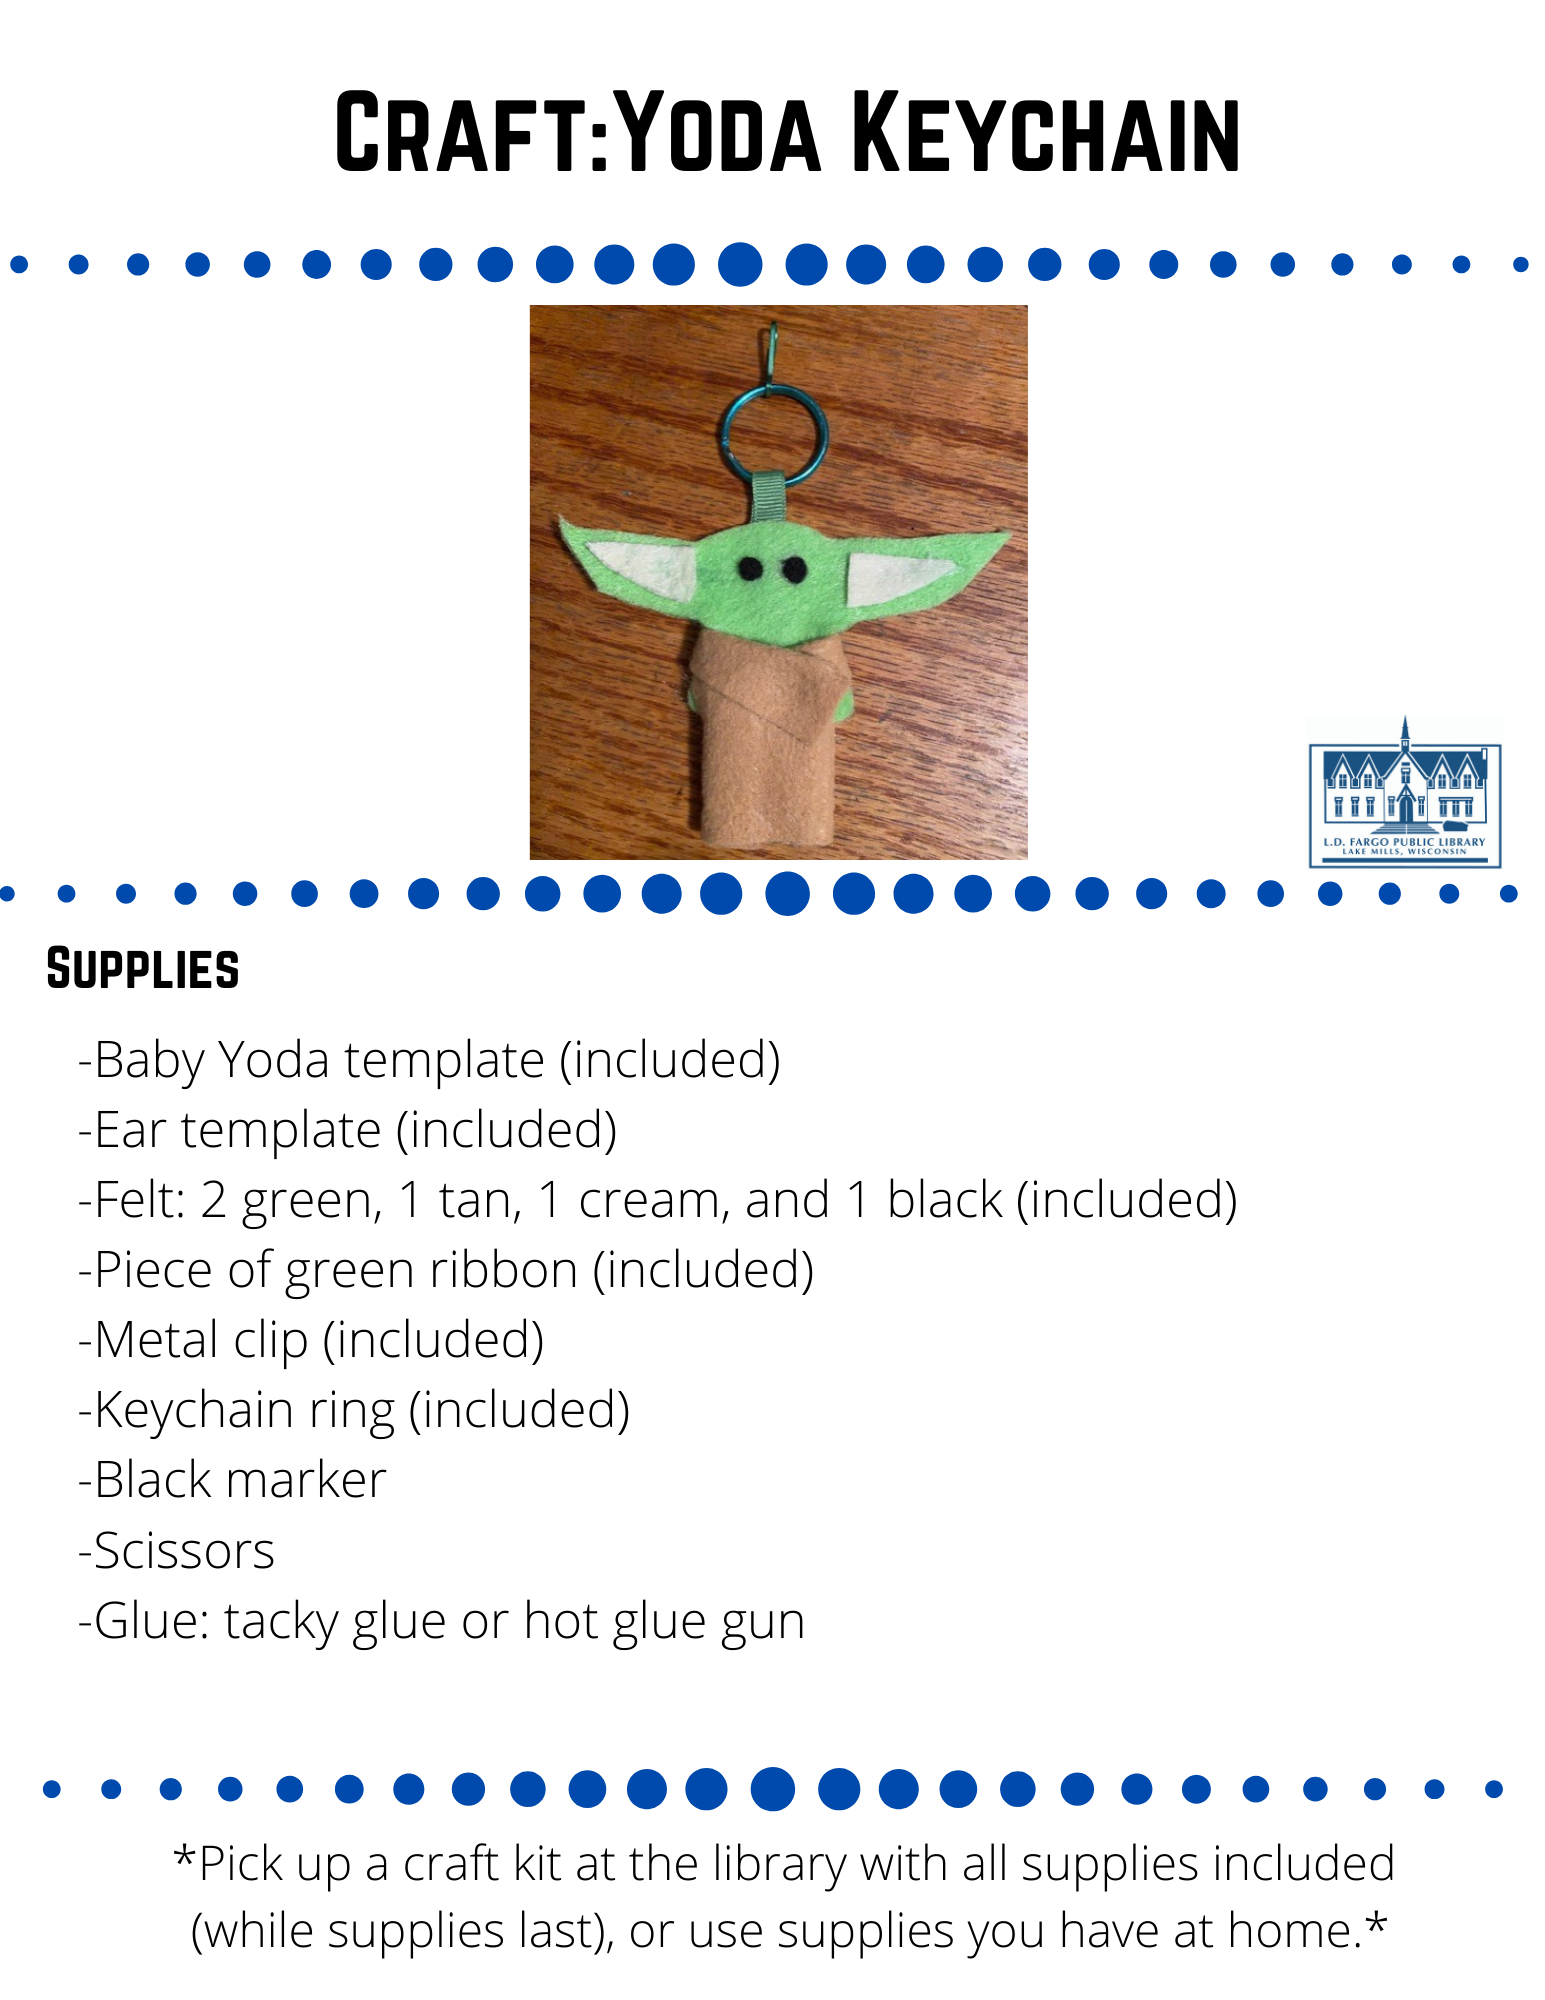 Craft:Yoda Keychain  Supplies  -Baby Yoda template (included) -Ear template (included) -Felt: 2 green, 1 tan, 1 cream, and 1 black (included) -Piece of green ribbon (included) -Metal clip (included) -Keychain ring (included) -Black marker -Scissors -Glue: tacky glue or hot glue gun  Directions  Step 1  Trace 2 copies of the Baby Yoda template onto your green felt with a black marker. Next, cut them out.  Step 2  Trace 2 copies of the ear template onto your cream felt and cut them out.Trace 2 copies of the ear template onto your cream felt and cut them out.  Step 3  Cut 2 circles from your black felt for eyes.  Step 4   Take your green ribbon and loop it through the key chain.  then, glue the ends of the ribbon together, and attach the metal clip to the key chain.  Step 5  Glue your 2 felt ears and eyes onto one of the green Yoda cutouts.  Step 6  Glue the ends of the ribbon (already glued together) to the top of the second Yoda cutout.  Then glue the two Yoda cutouts together with the ribbon sandwiched in between them, and the eyes and ears on the outside.  Step 7  Fold down the piece of tan felt lengthwise about 1/2-inch and lay it down with the shorter folded edge facing down.  Place the Baby Yoda on top in the center and mark where top and bottom of arms are onto the tan felt with a marker.    Step 8  Cut 2 slits in the tan felt where you marked for Baby Yoda's arms.  Step 9  Lay the shorter folded edge of the tan felt back down.  Pull Baby Yoda's arms through the slits and wrap the tan felt around front like a cloak.  Step 10  Glue the tan felt to front and back of Baby Yoda.   Note: If you use another type of glue besides hot glue, you might need to lace something heavy on top until the glue completely dries.    Feel free to share your creation on our social media pages or  email to briannaadams@lakemills.lib.wi.us